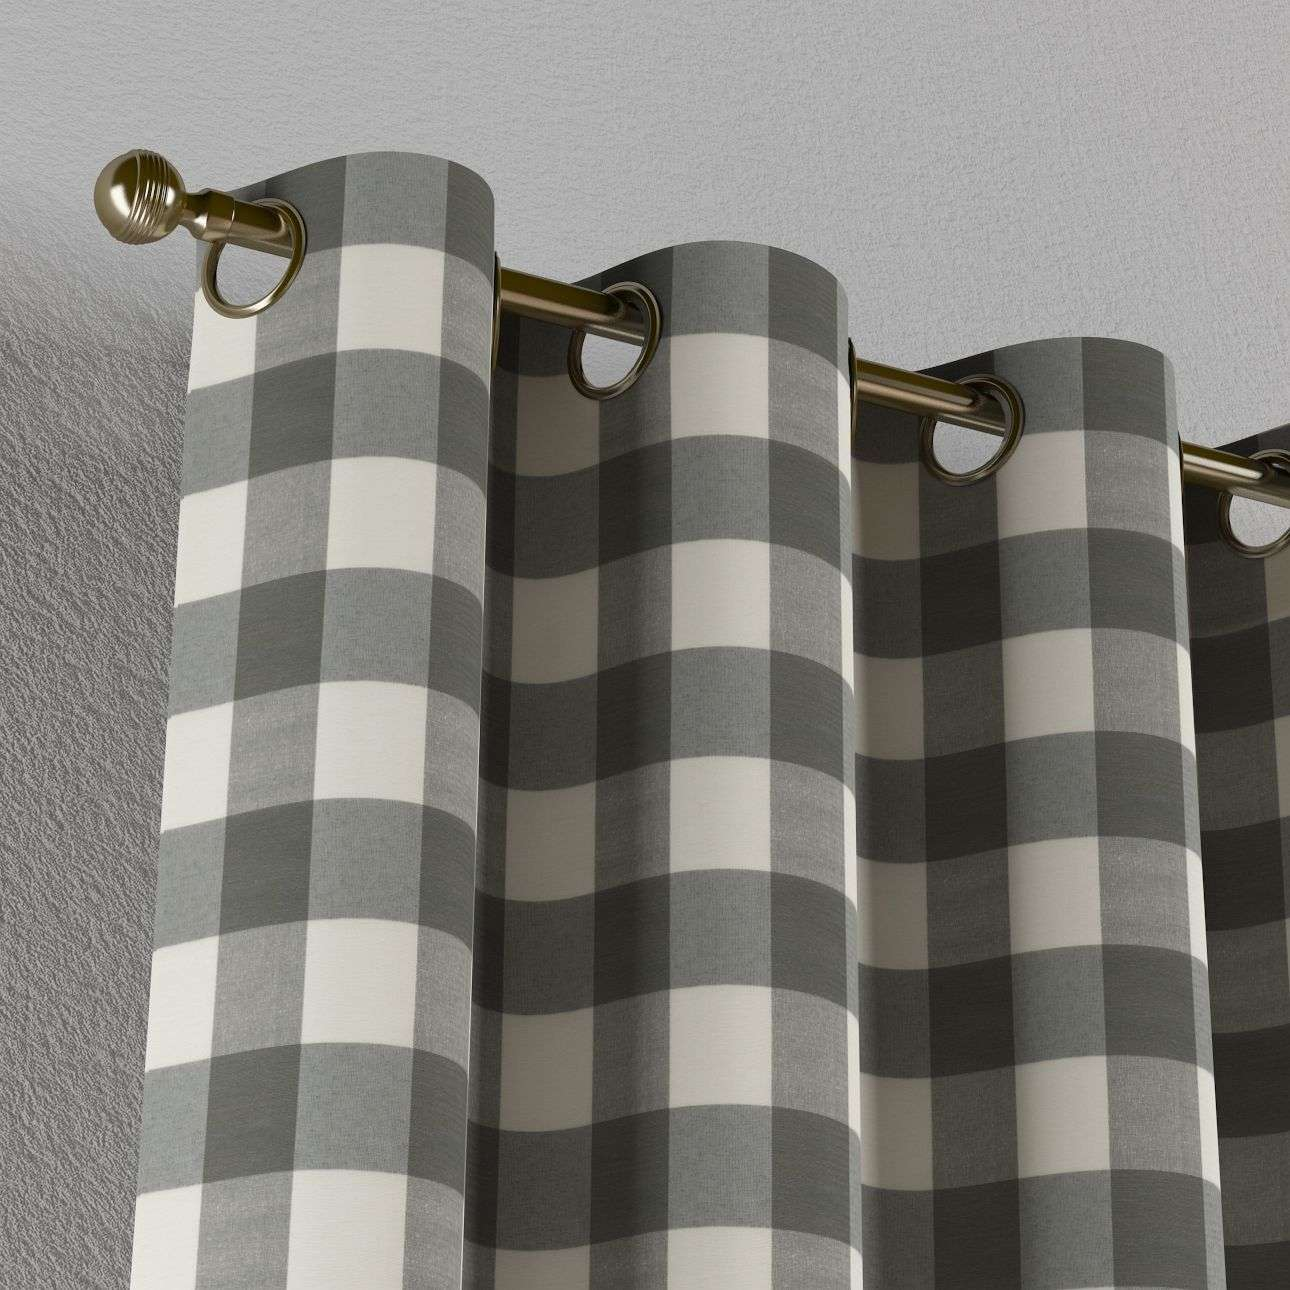 Eyelet curtains 130 x 260 cm (51 x 102 inch) in collection Quadro, fabric: 136-13